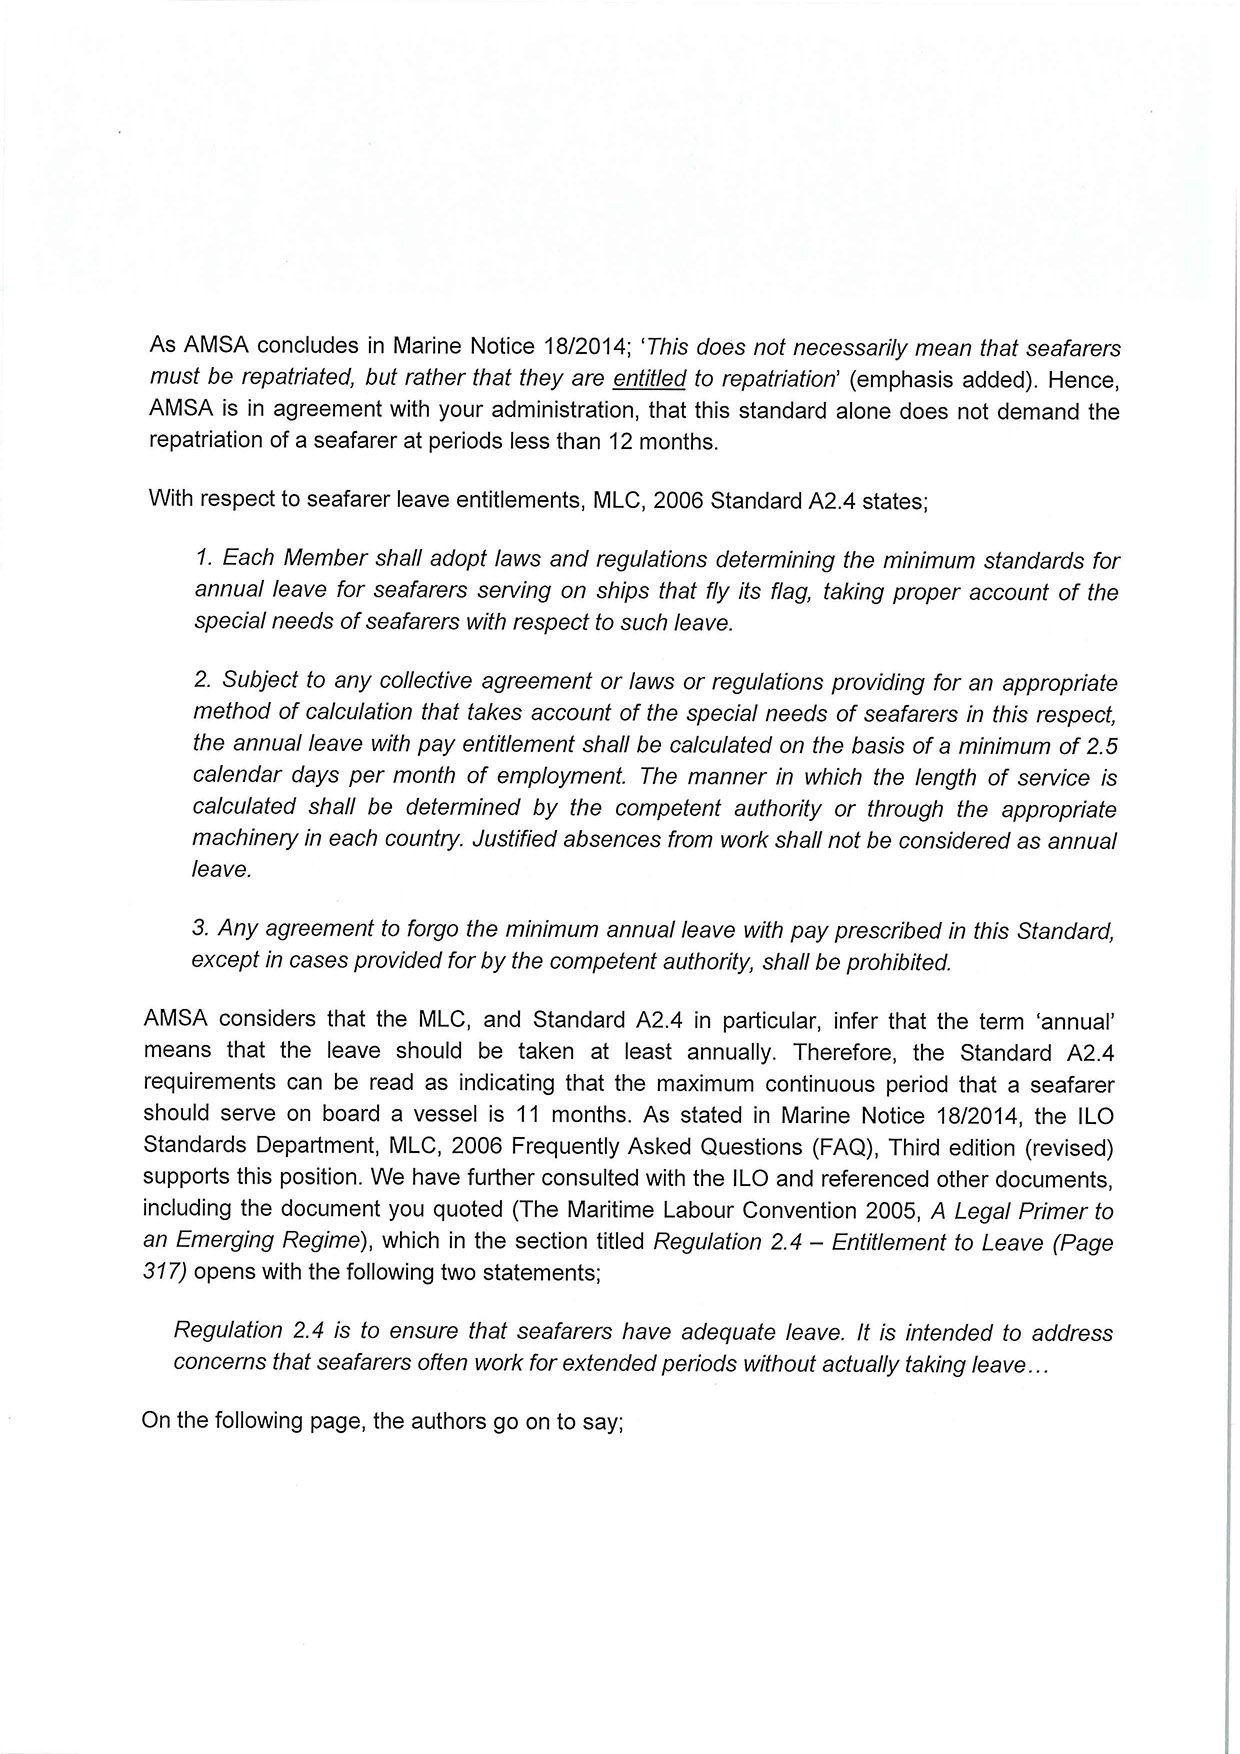 AMSA Response - Corro from Marshall Islands re MLC Annual Leave - MLC 20_Page_2.jpg